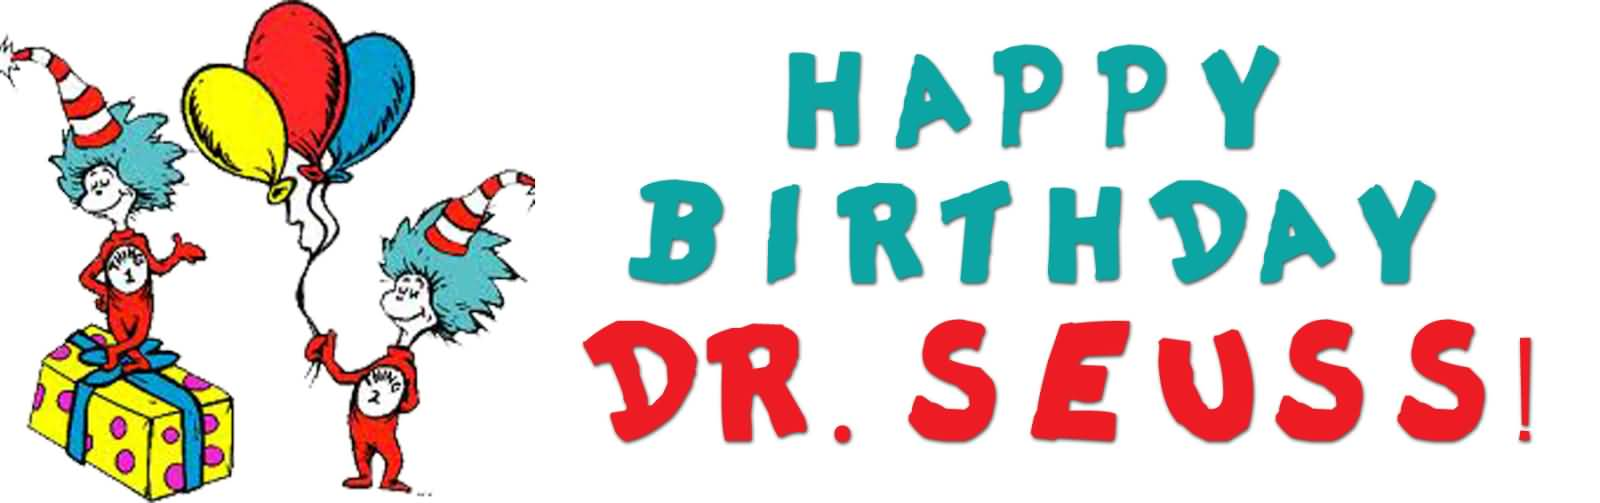 Happy Birthday Dr